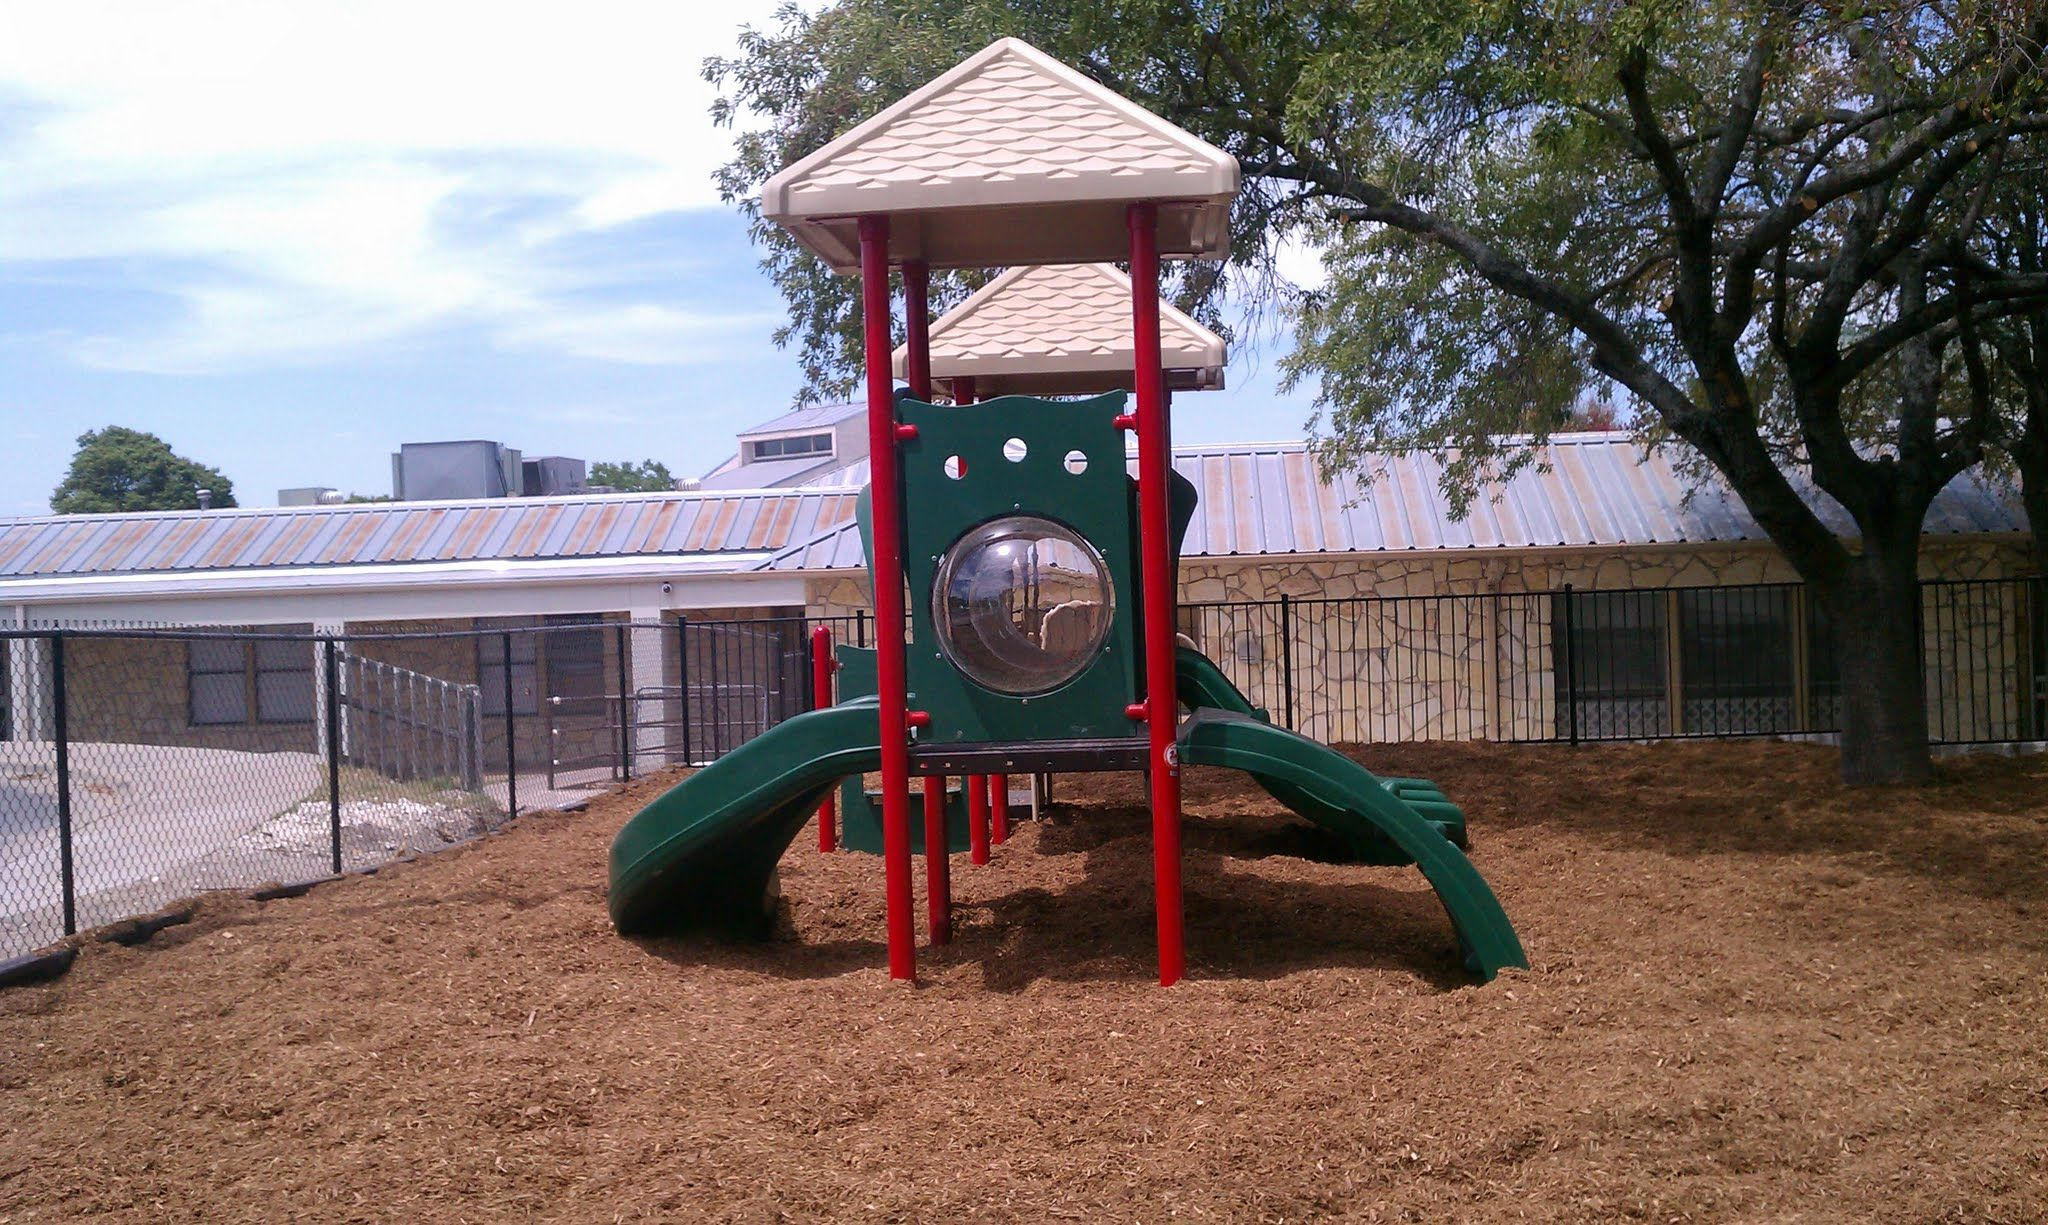 Ps3 12157 playground model from dunrite playgrounds http for Dunrite